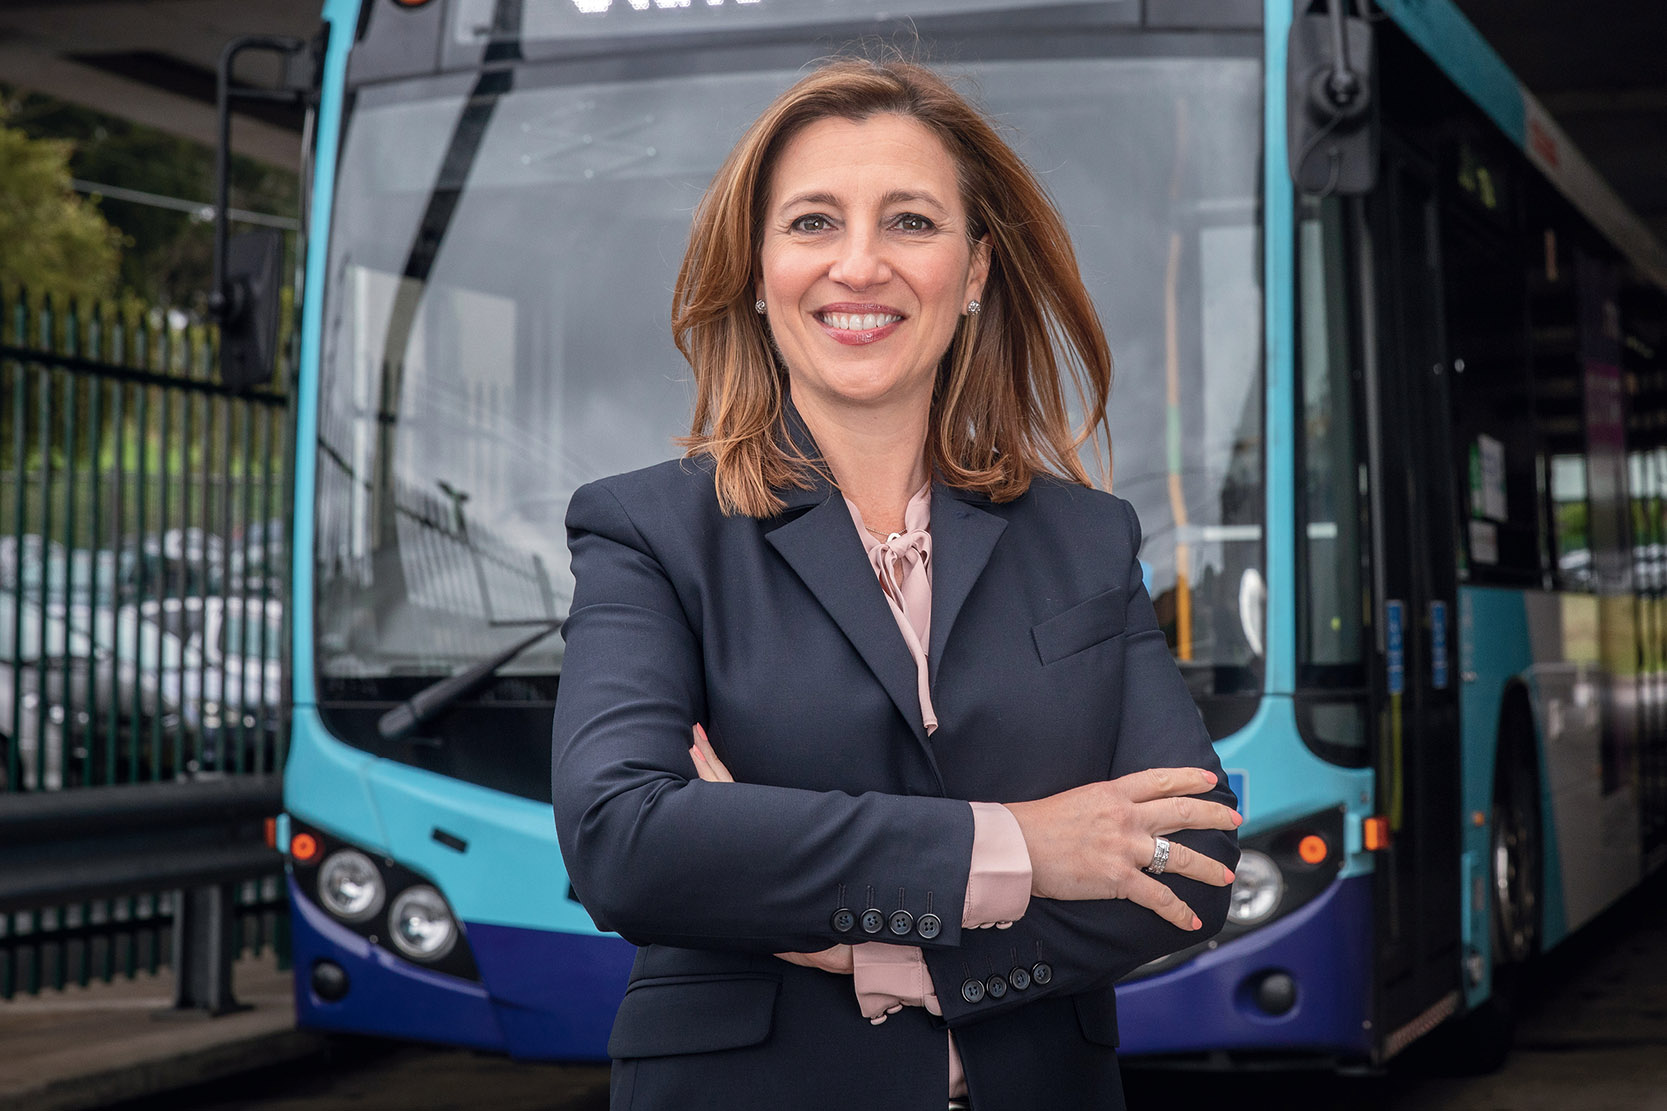 Daniela Fontana, CEO of State Transit Authority of NSW